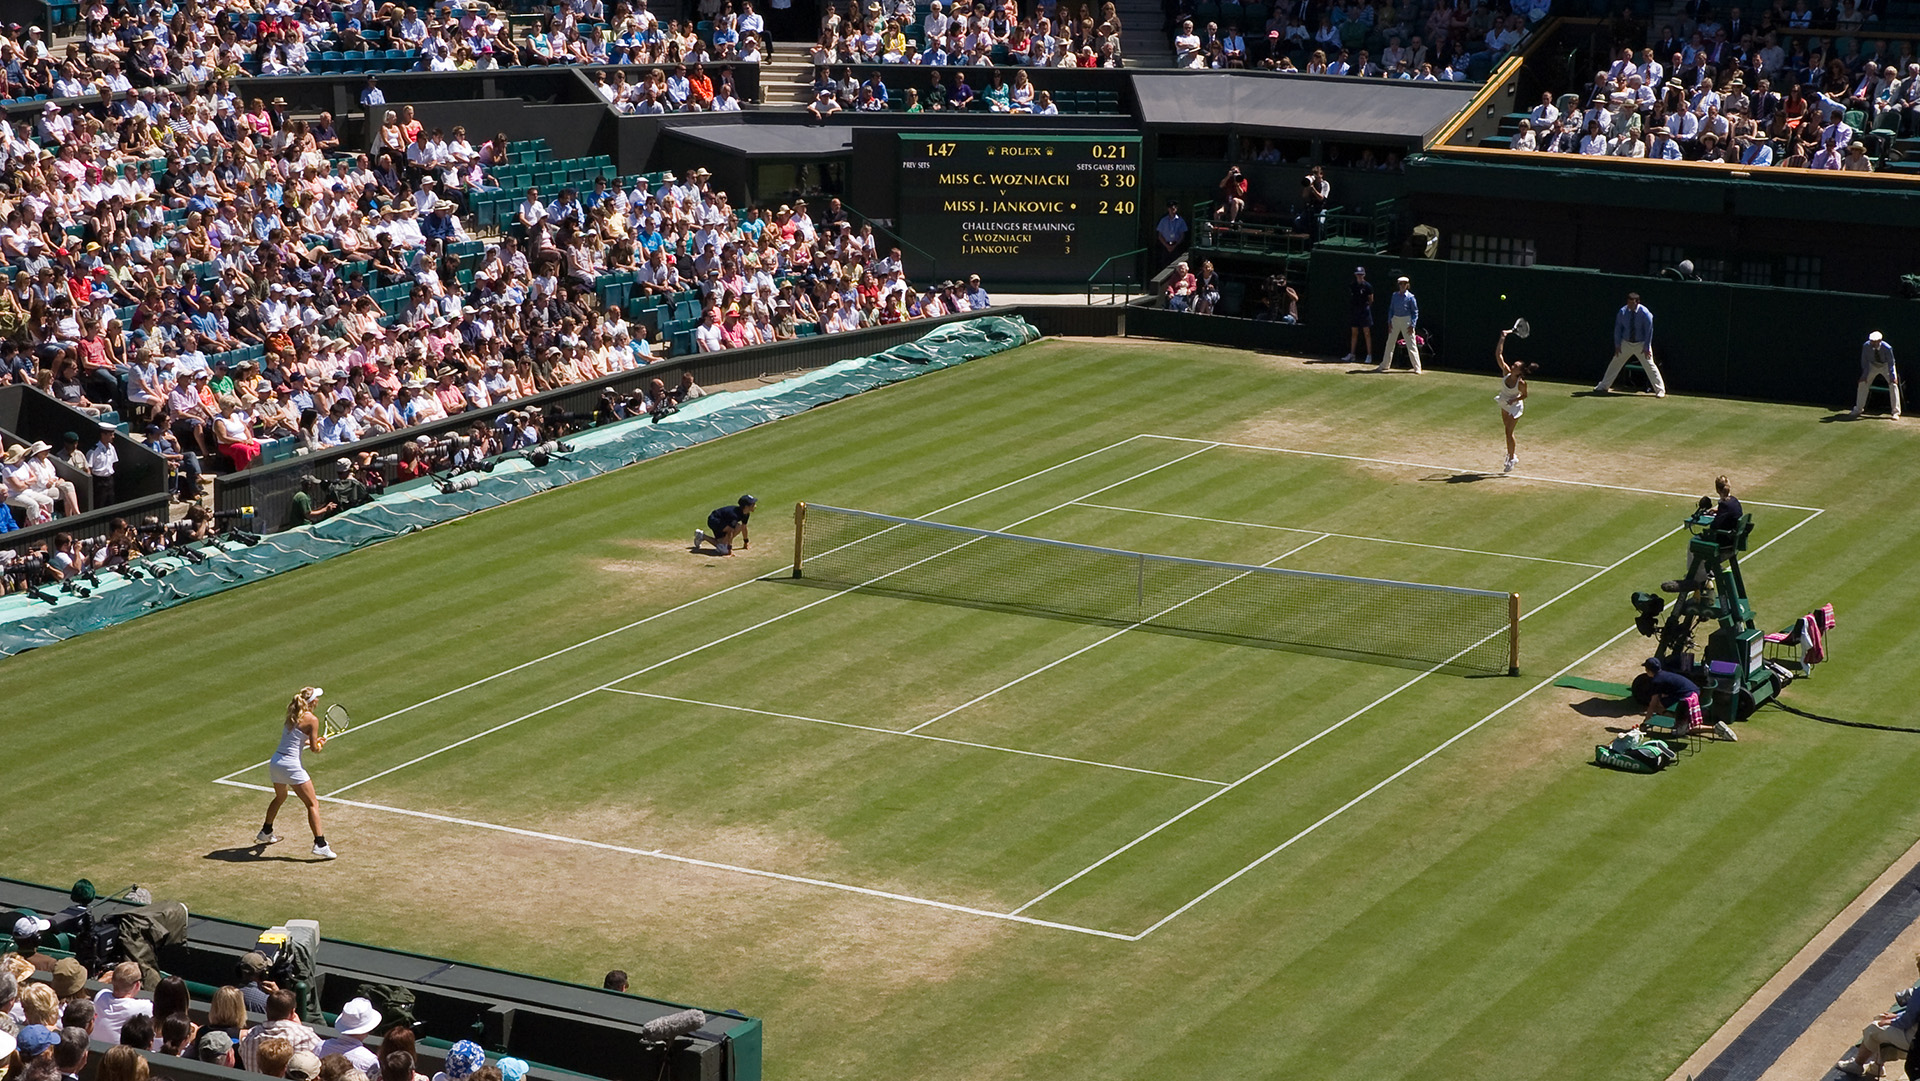 Match on Centre Court #2